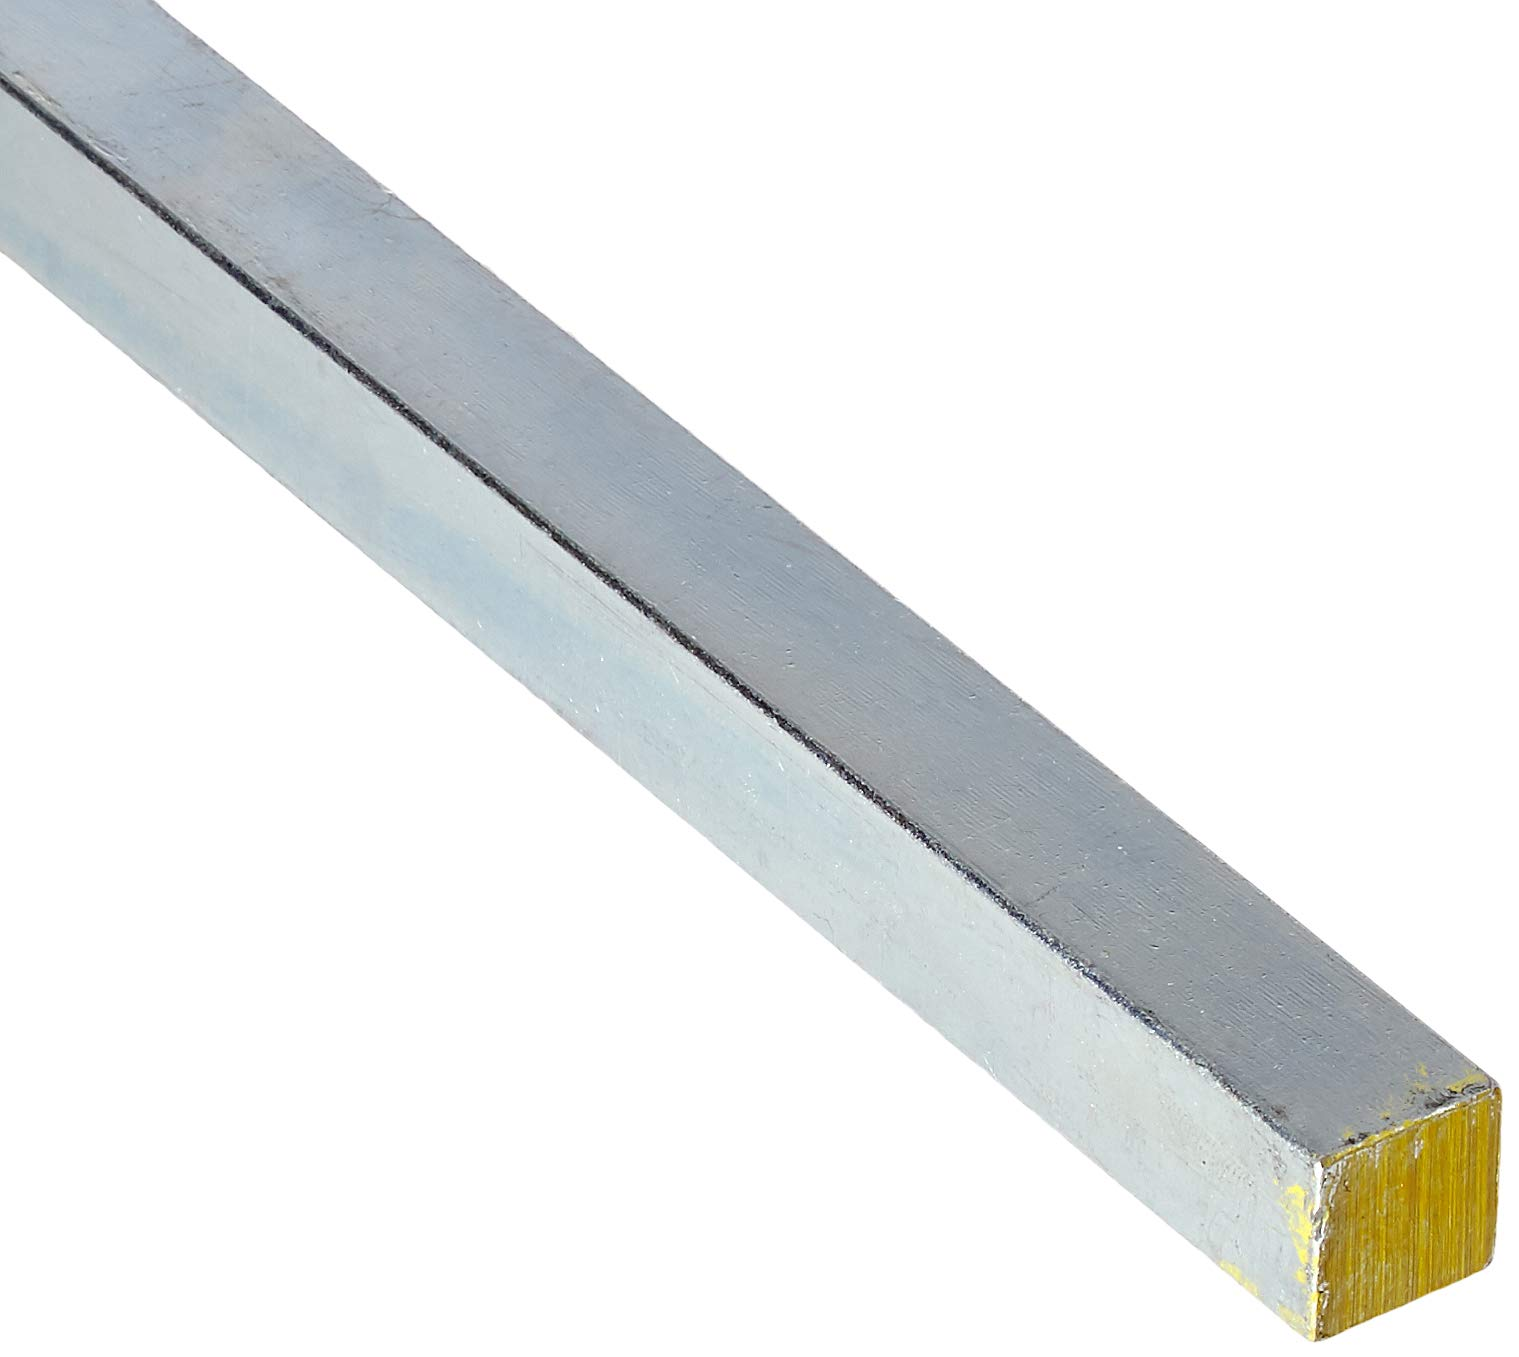 Forney 49717 Galvanized Plated Cold Rolled Keystock, 3/4'' x 1' by Forney